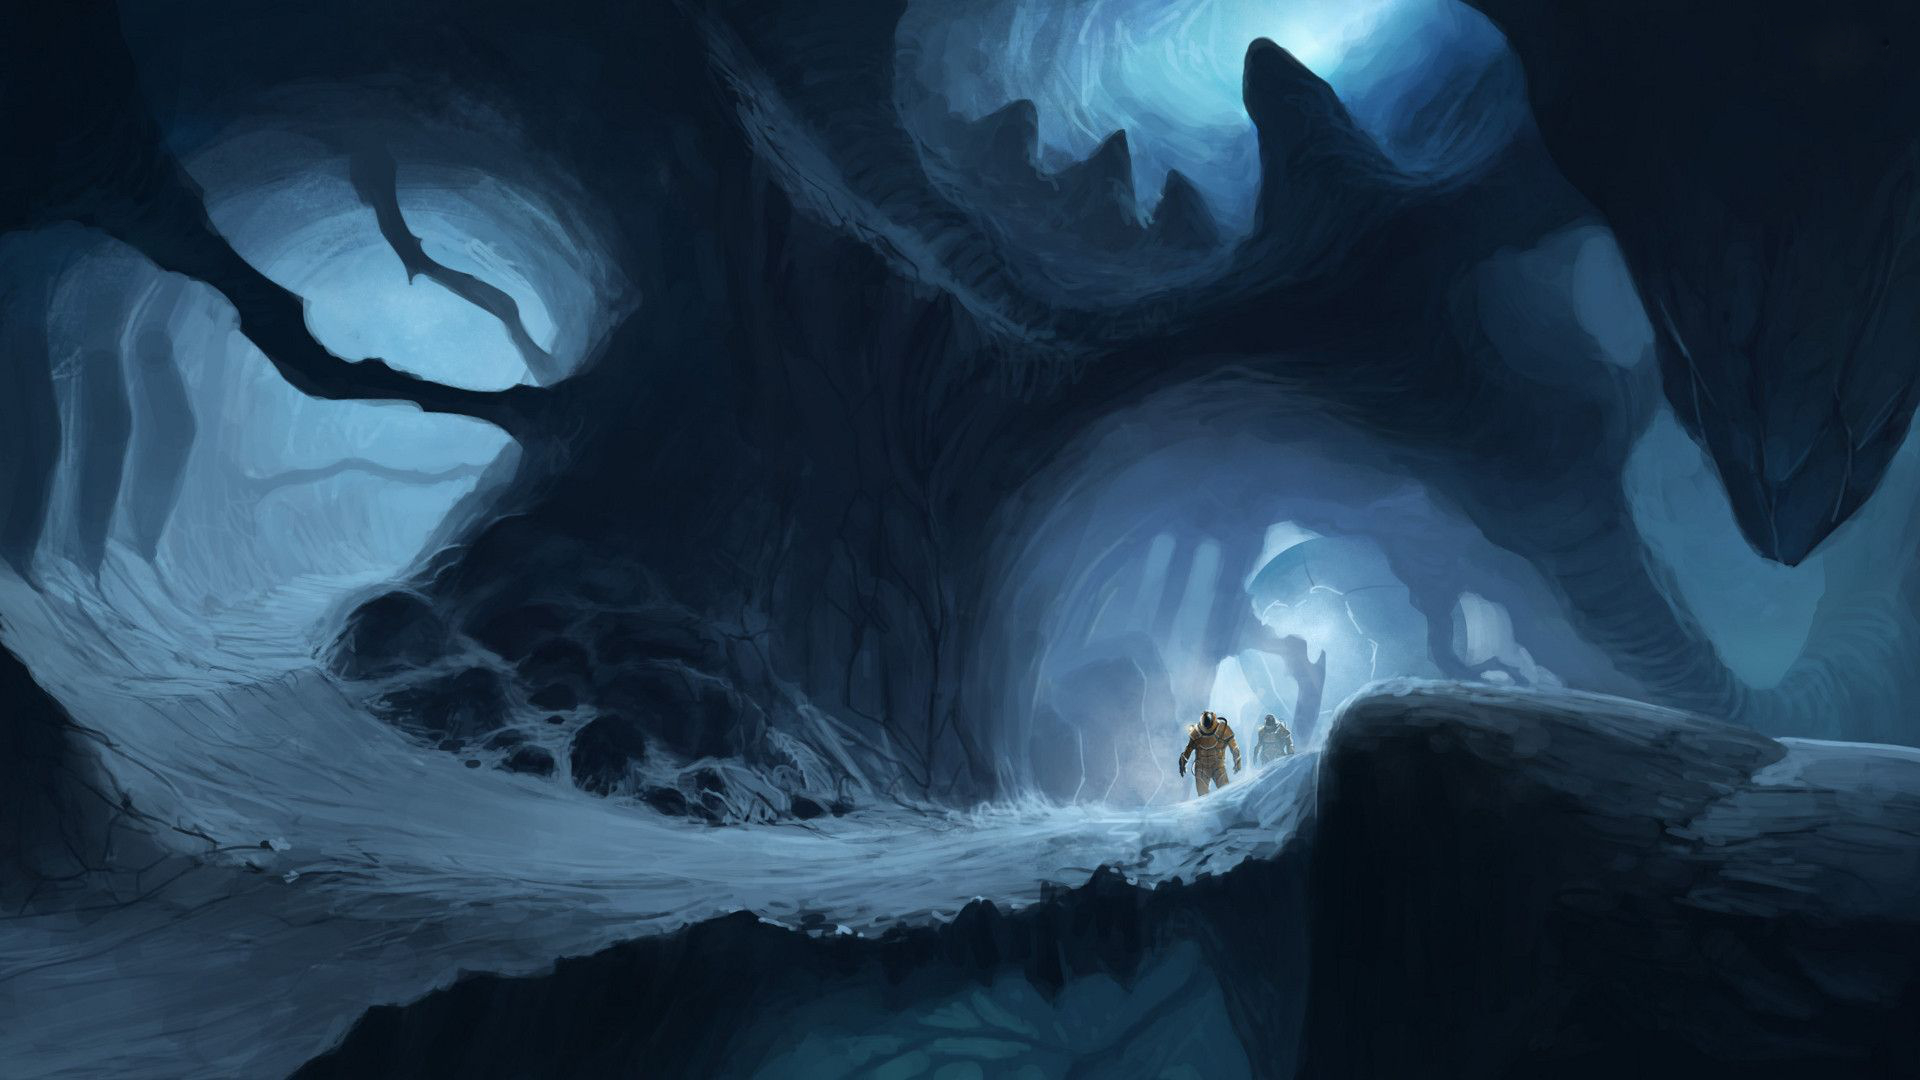 Cave Full Hd Wallpaper And Background 1920x1080 Id 528567 HD Wallpapers Download Free Images Wallpaper [1000image.com]